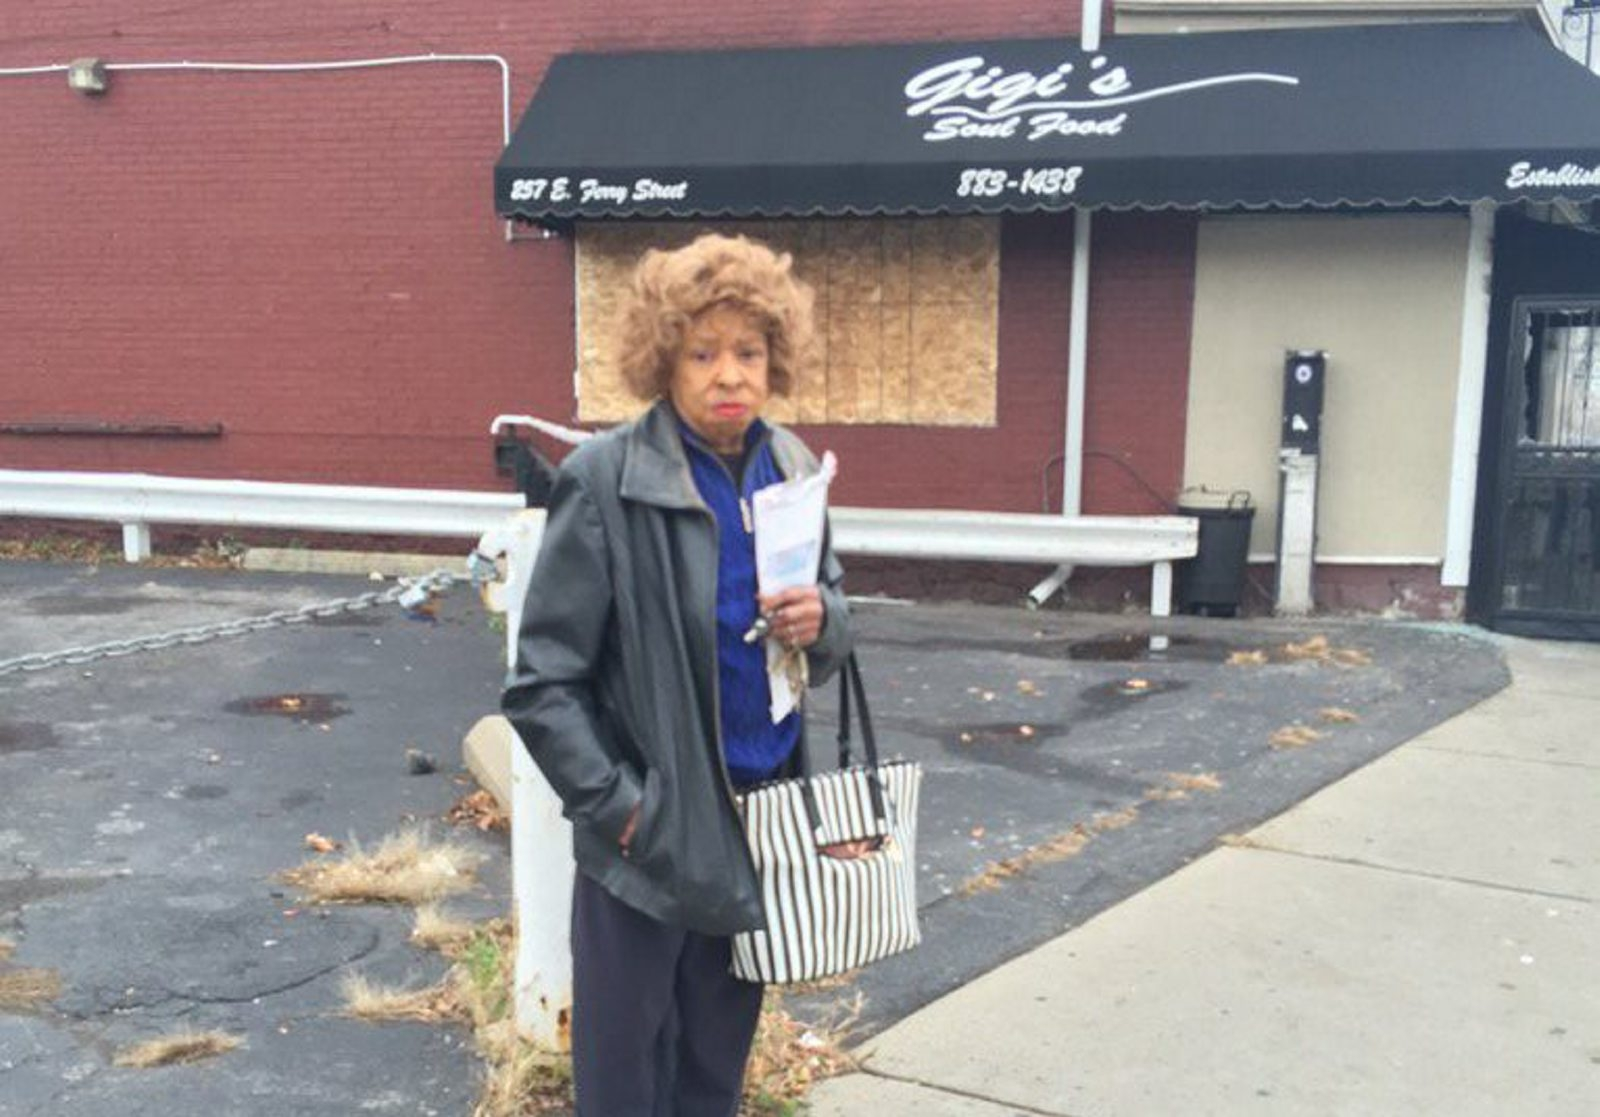 Owner Blondine Harvin is seen outside Gigi's restaurant Saturday morning after an early morning fire damaged the building. (Jane Kwiatkowski Radlich/Buffalo News)